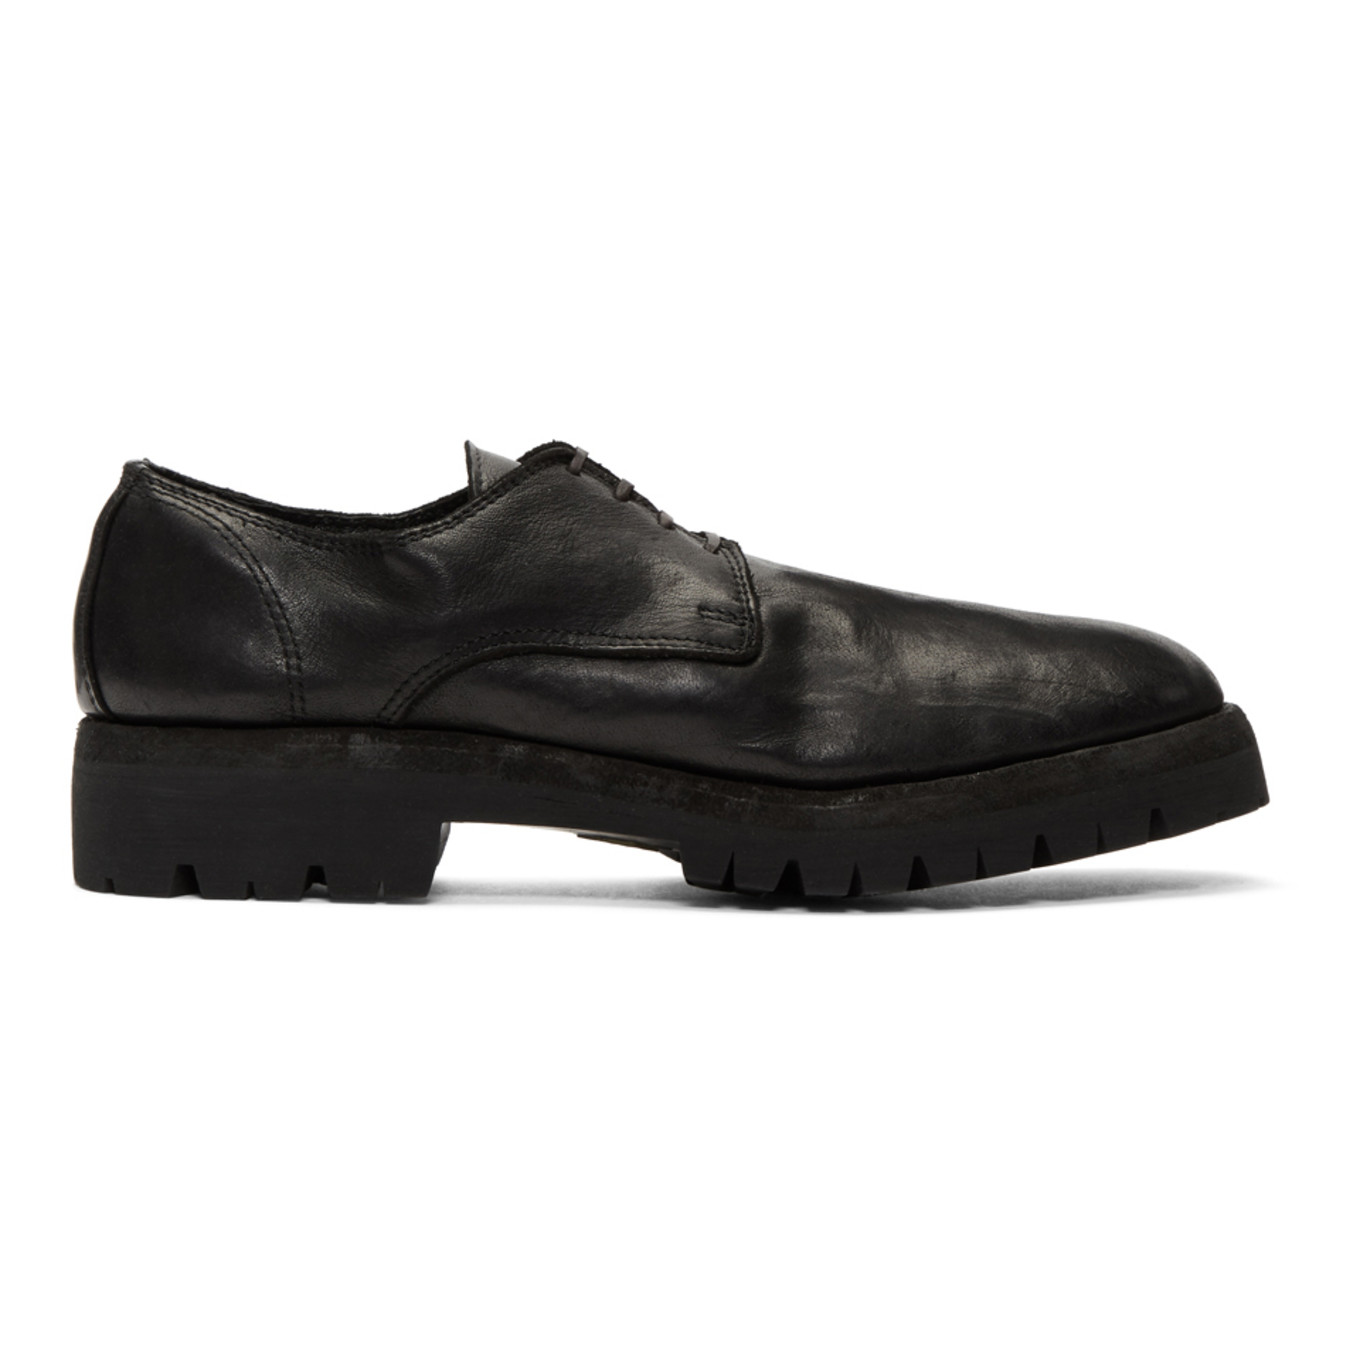 Black Leather Rubber Sole Derbys by Guidi